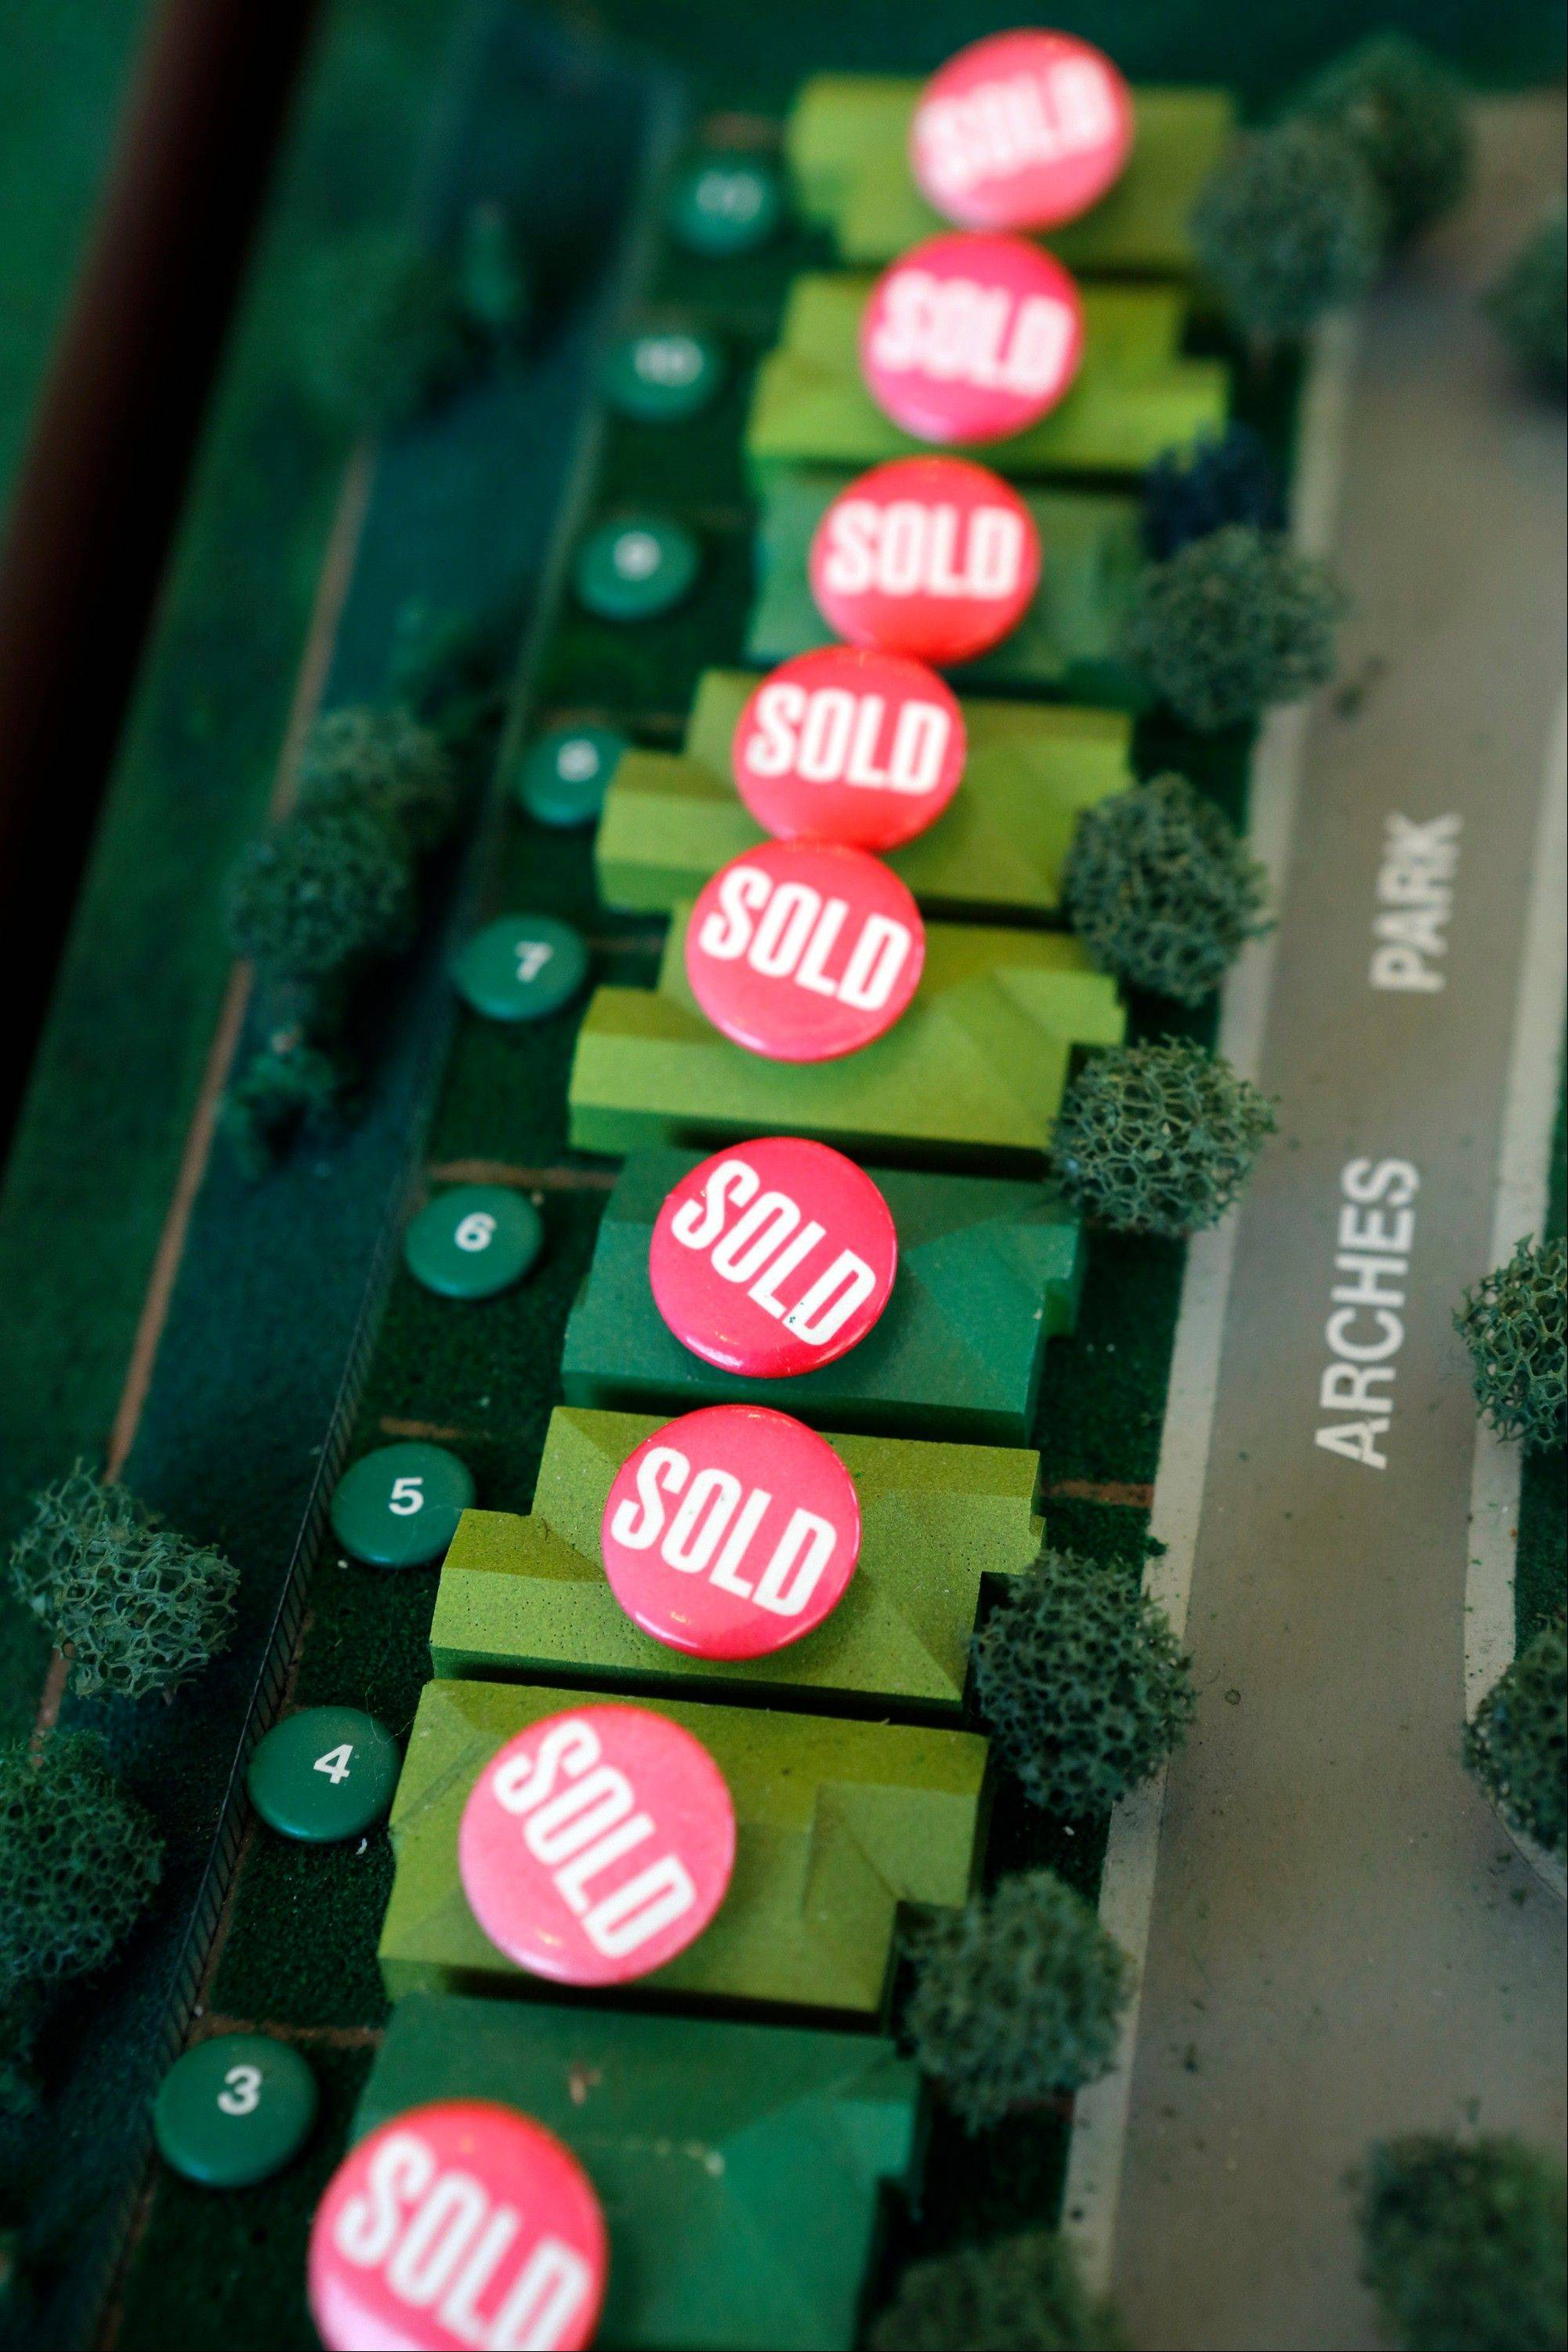 Homes that have been sold are marked with buttons on a model in the sales office of Hovnanian Enterprises Inc.'s Four Seasons housing development in Beaumont, California.